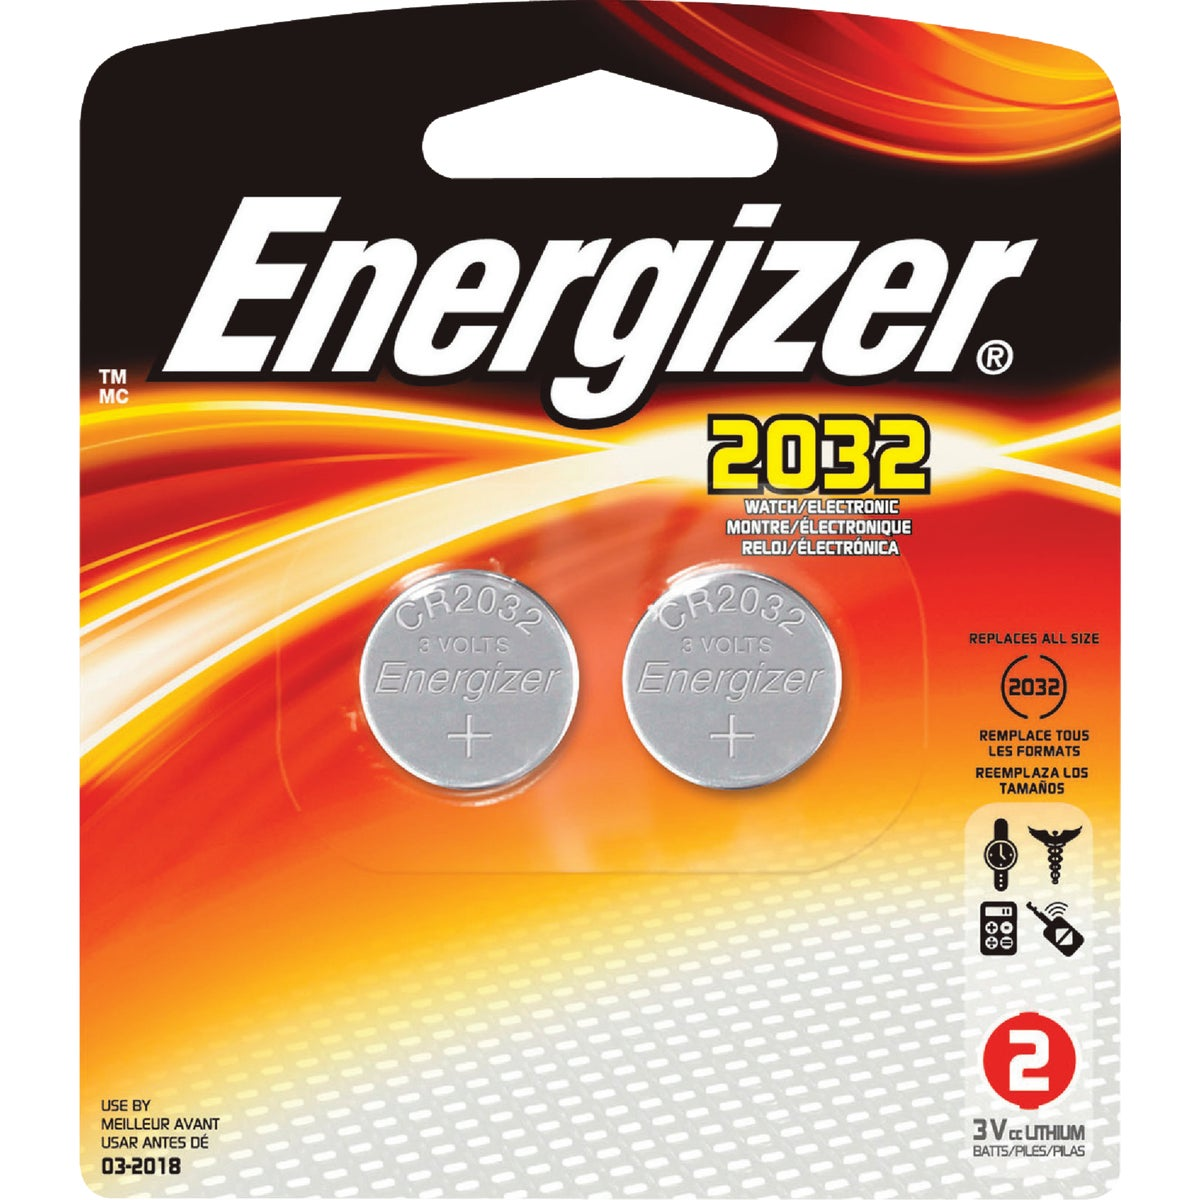 LITHIUM WATCH BATTERY - 2032BP-2 by Energizer